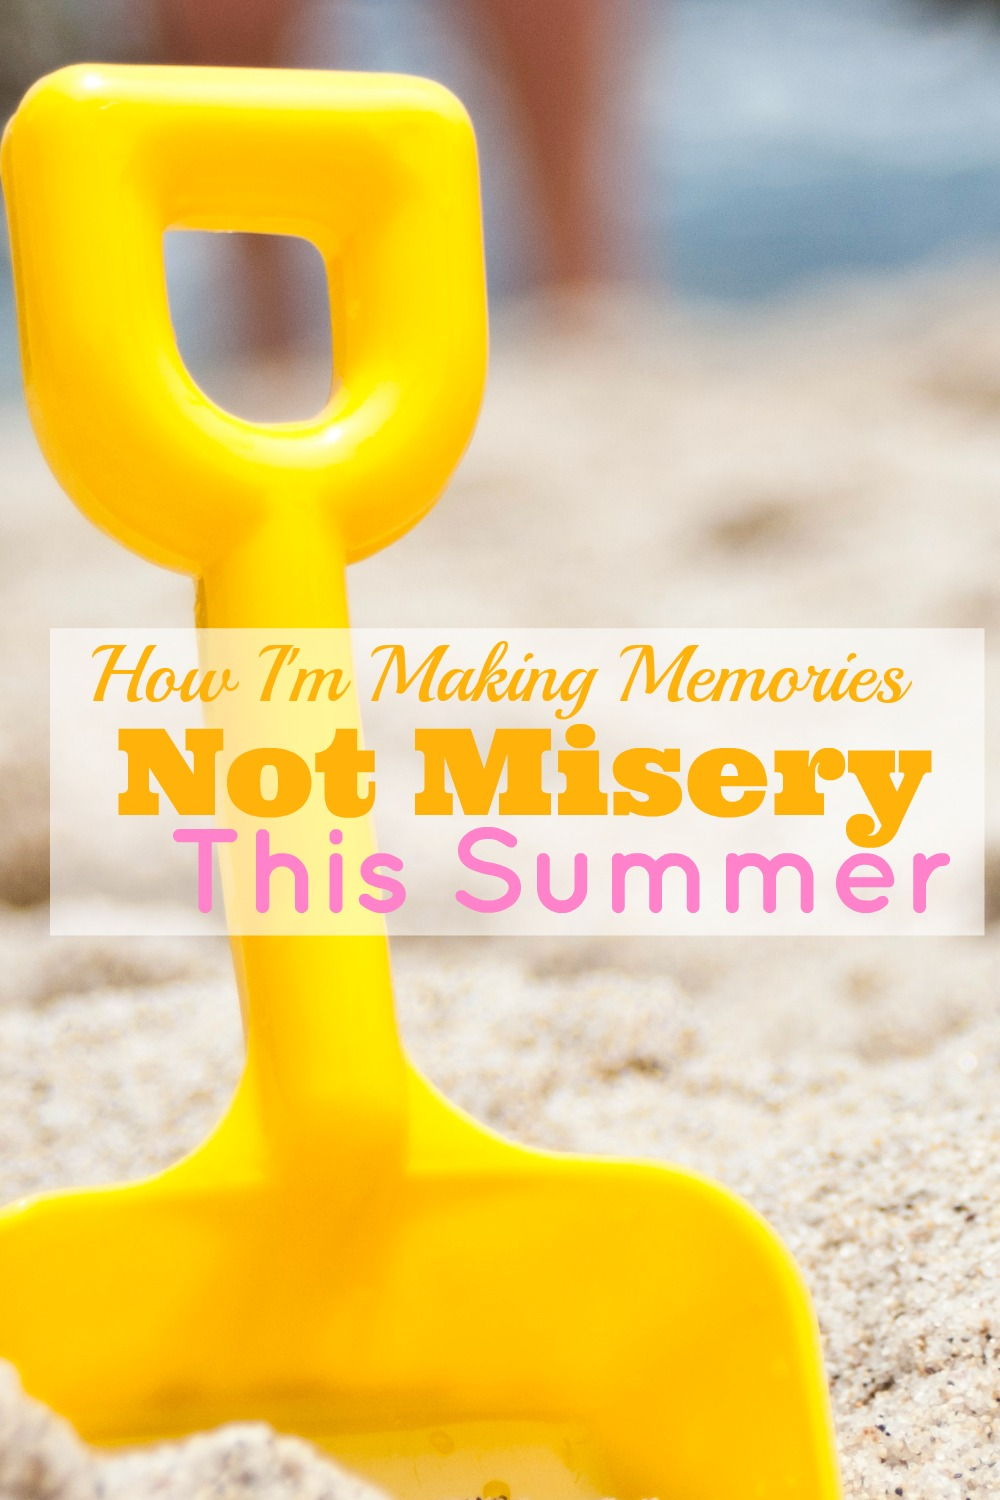 How I Plan To Make Memories, Not Misery, This Summer